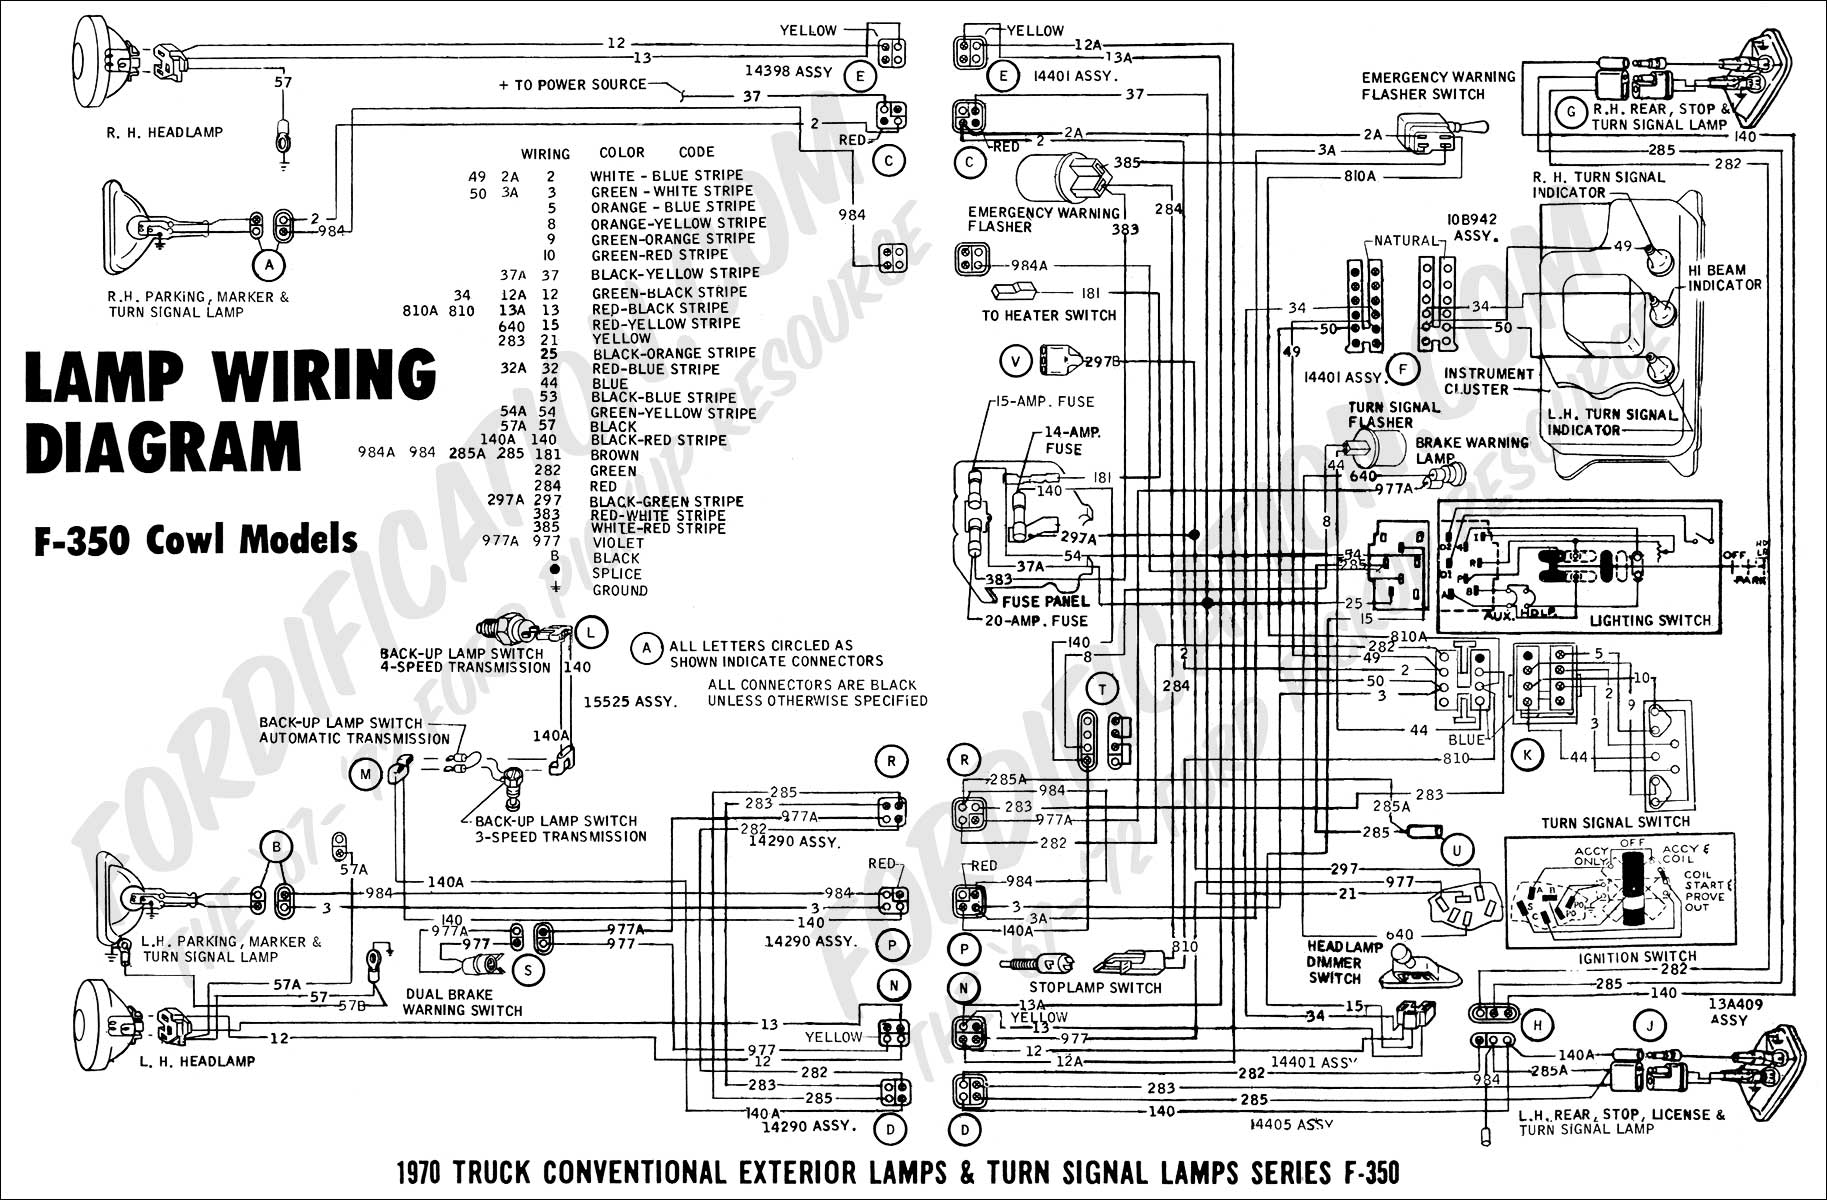 2001 F550 Wiring Diagram - Today Diagram Database Ford F Trailer Wiring Diagram on